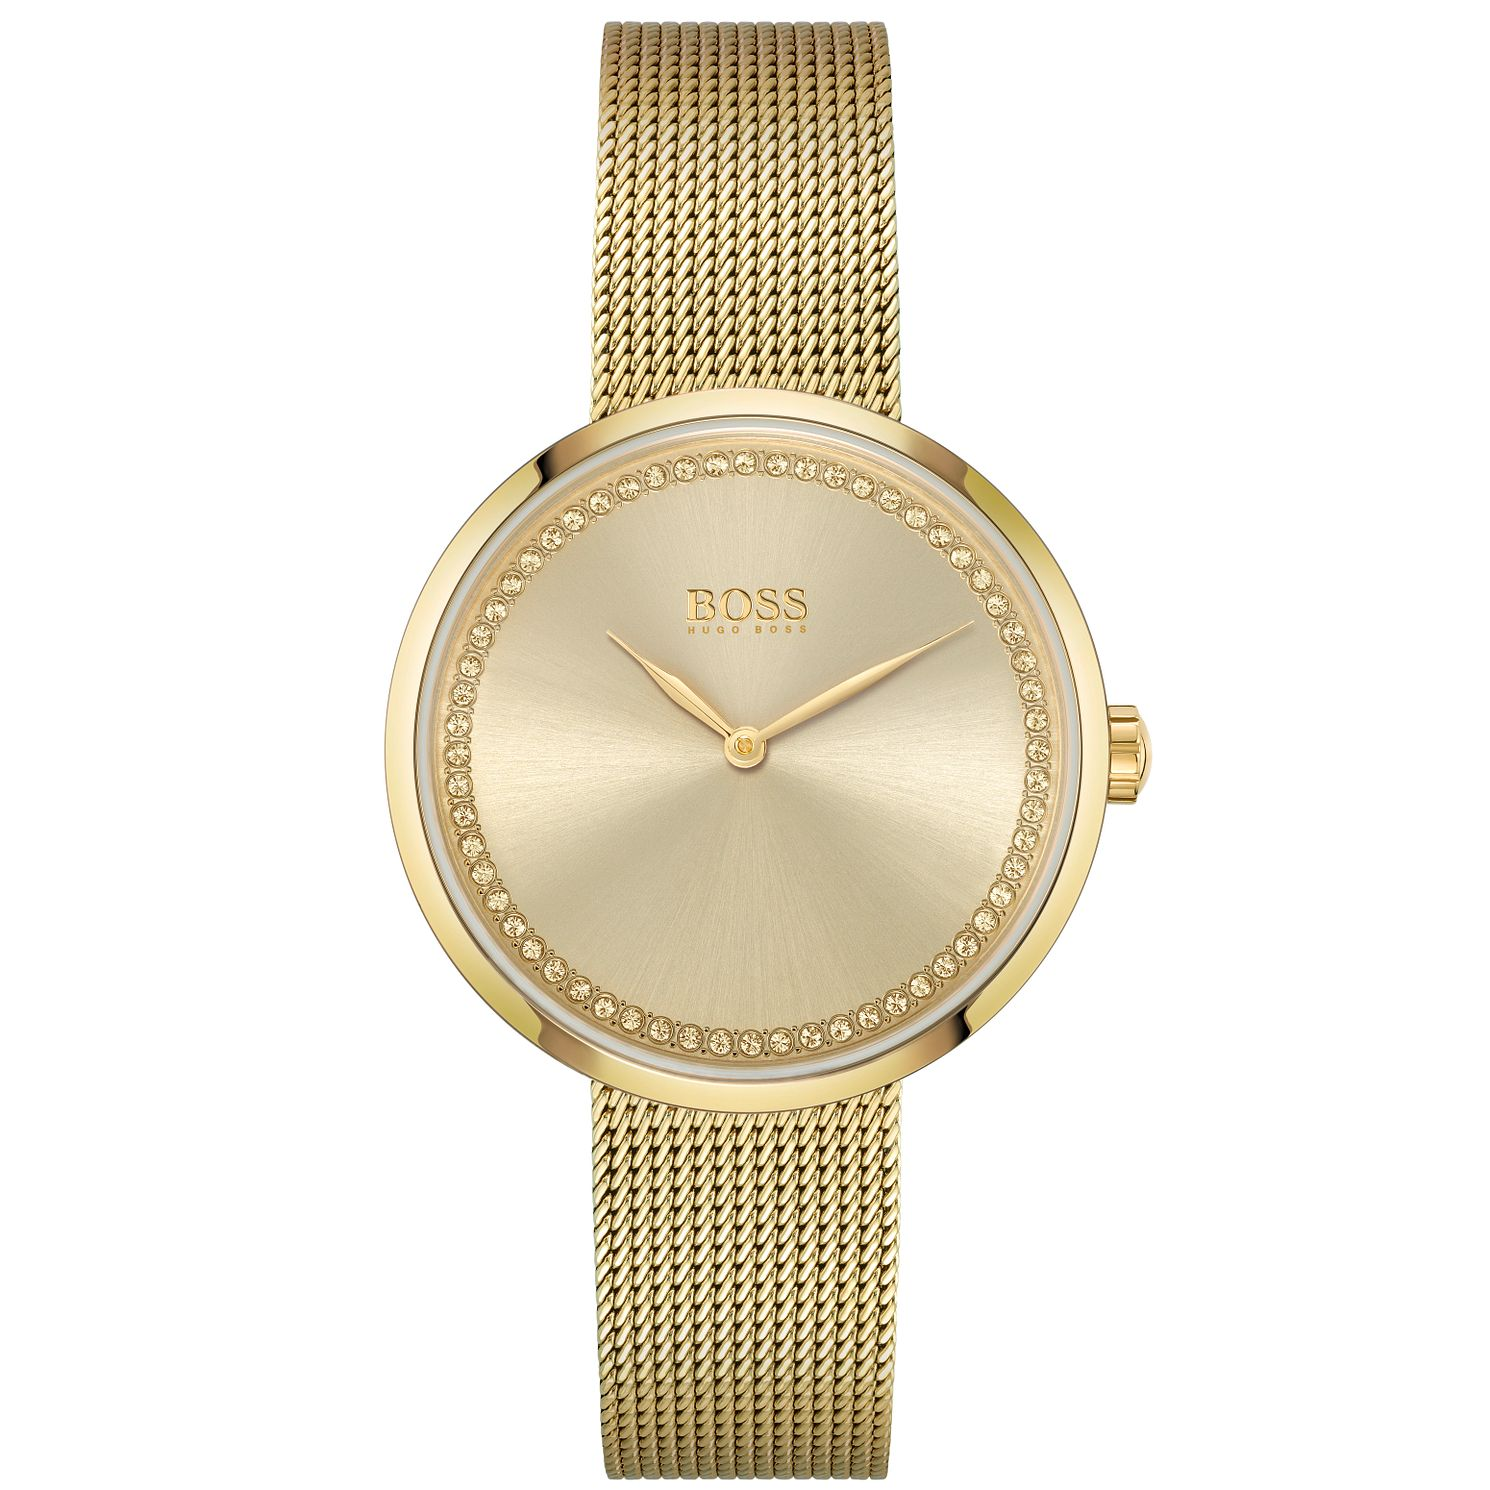 BOSS Praise Ladies' Yellow Gold Tone Bracelet Watch - Product number 4654099